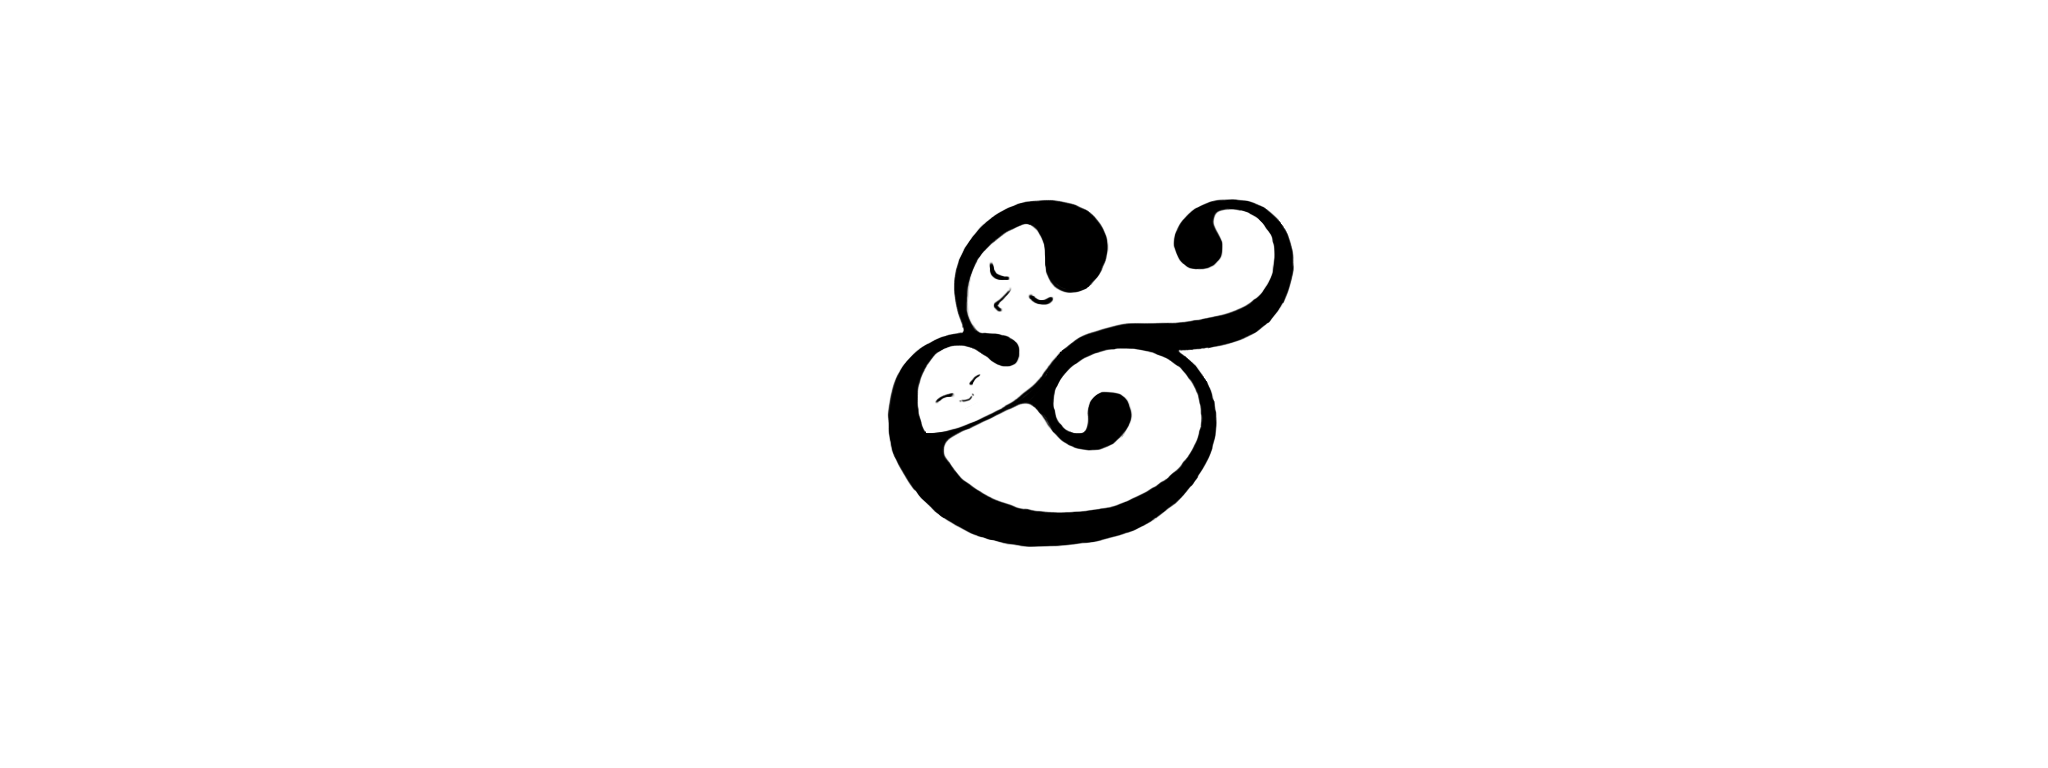 final_ampersand.png